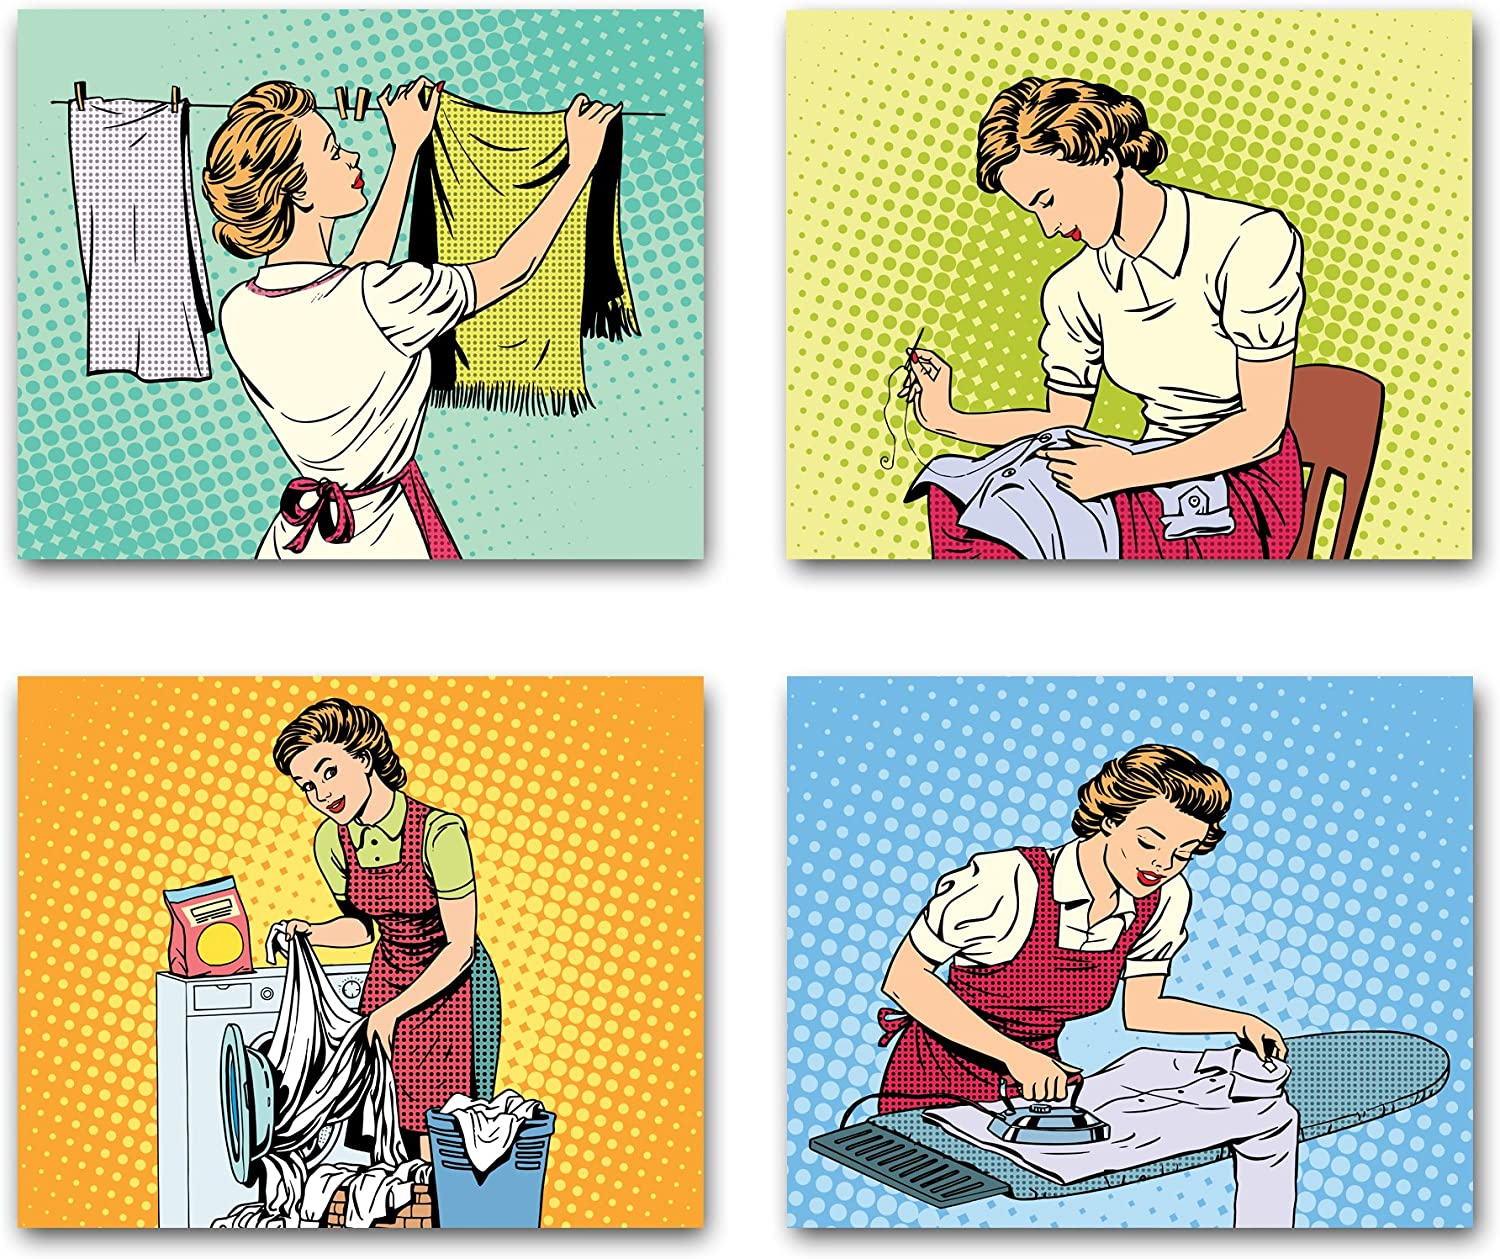 8x10 RETRO POP ART style wall decor posters. Set of 4 UNFRAMED housewife theme poster prints. Made in USA.